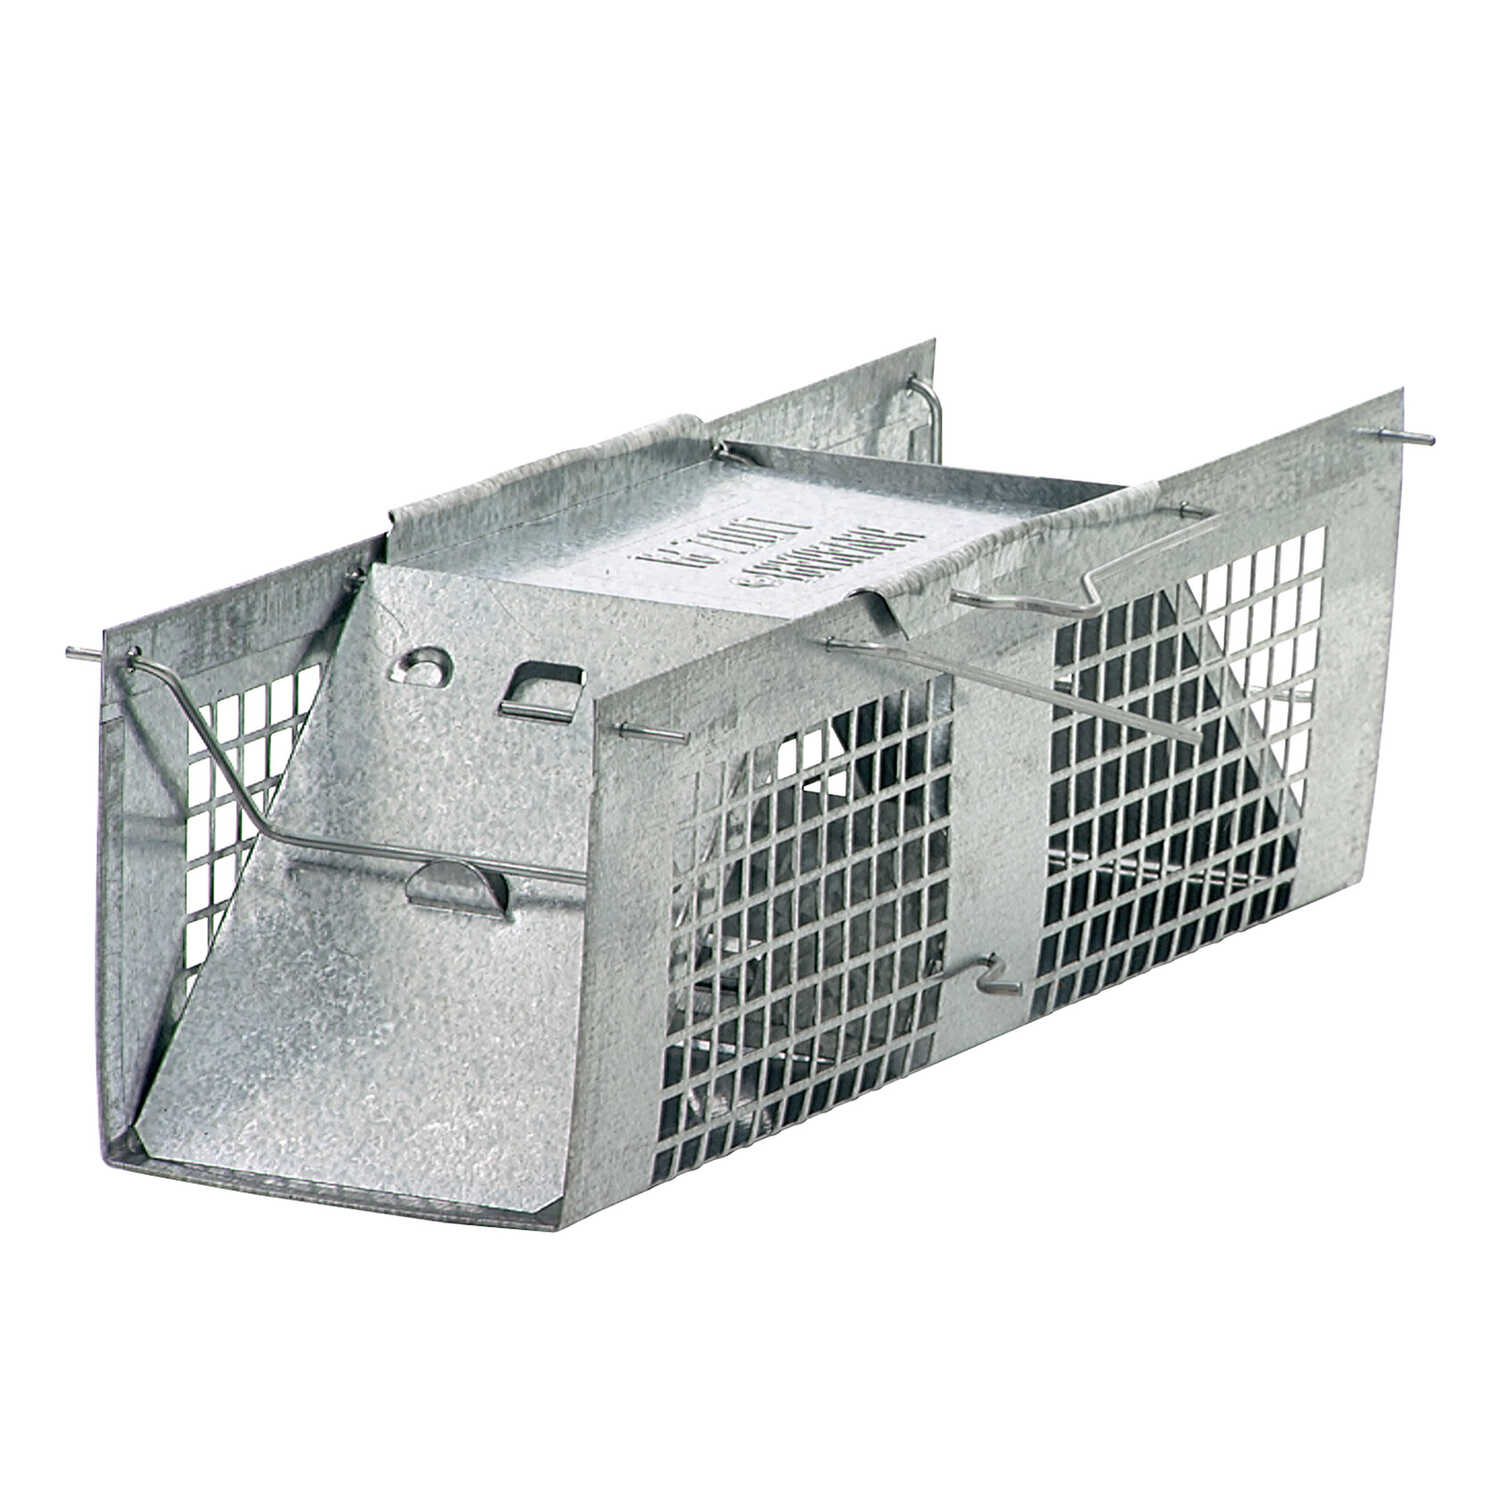 Havahart  Live Catch  Cage Trap  For Mice, Mice 1 pk